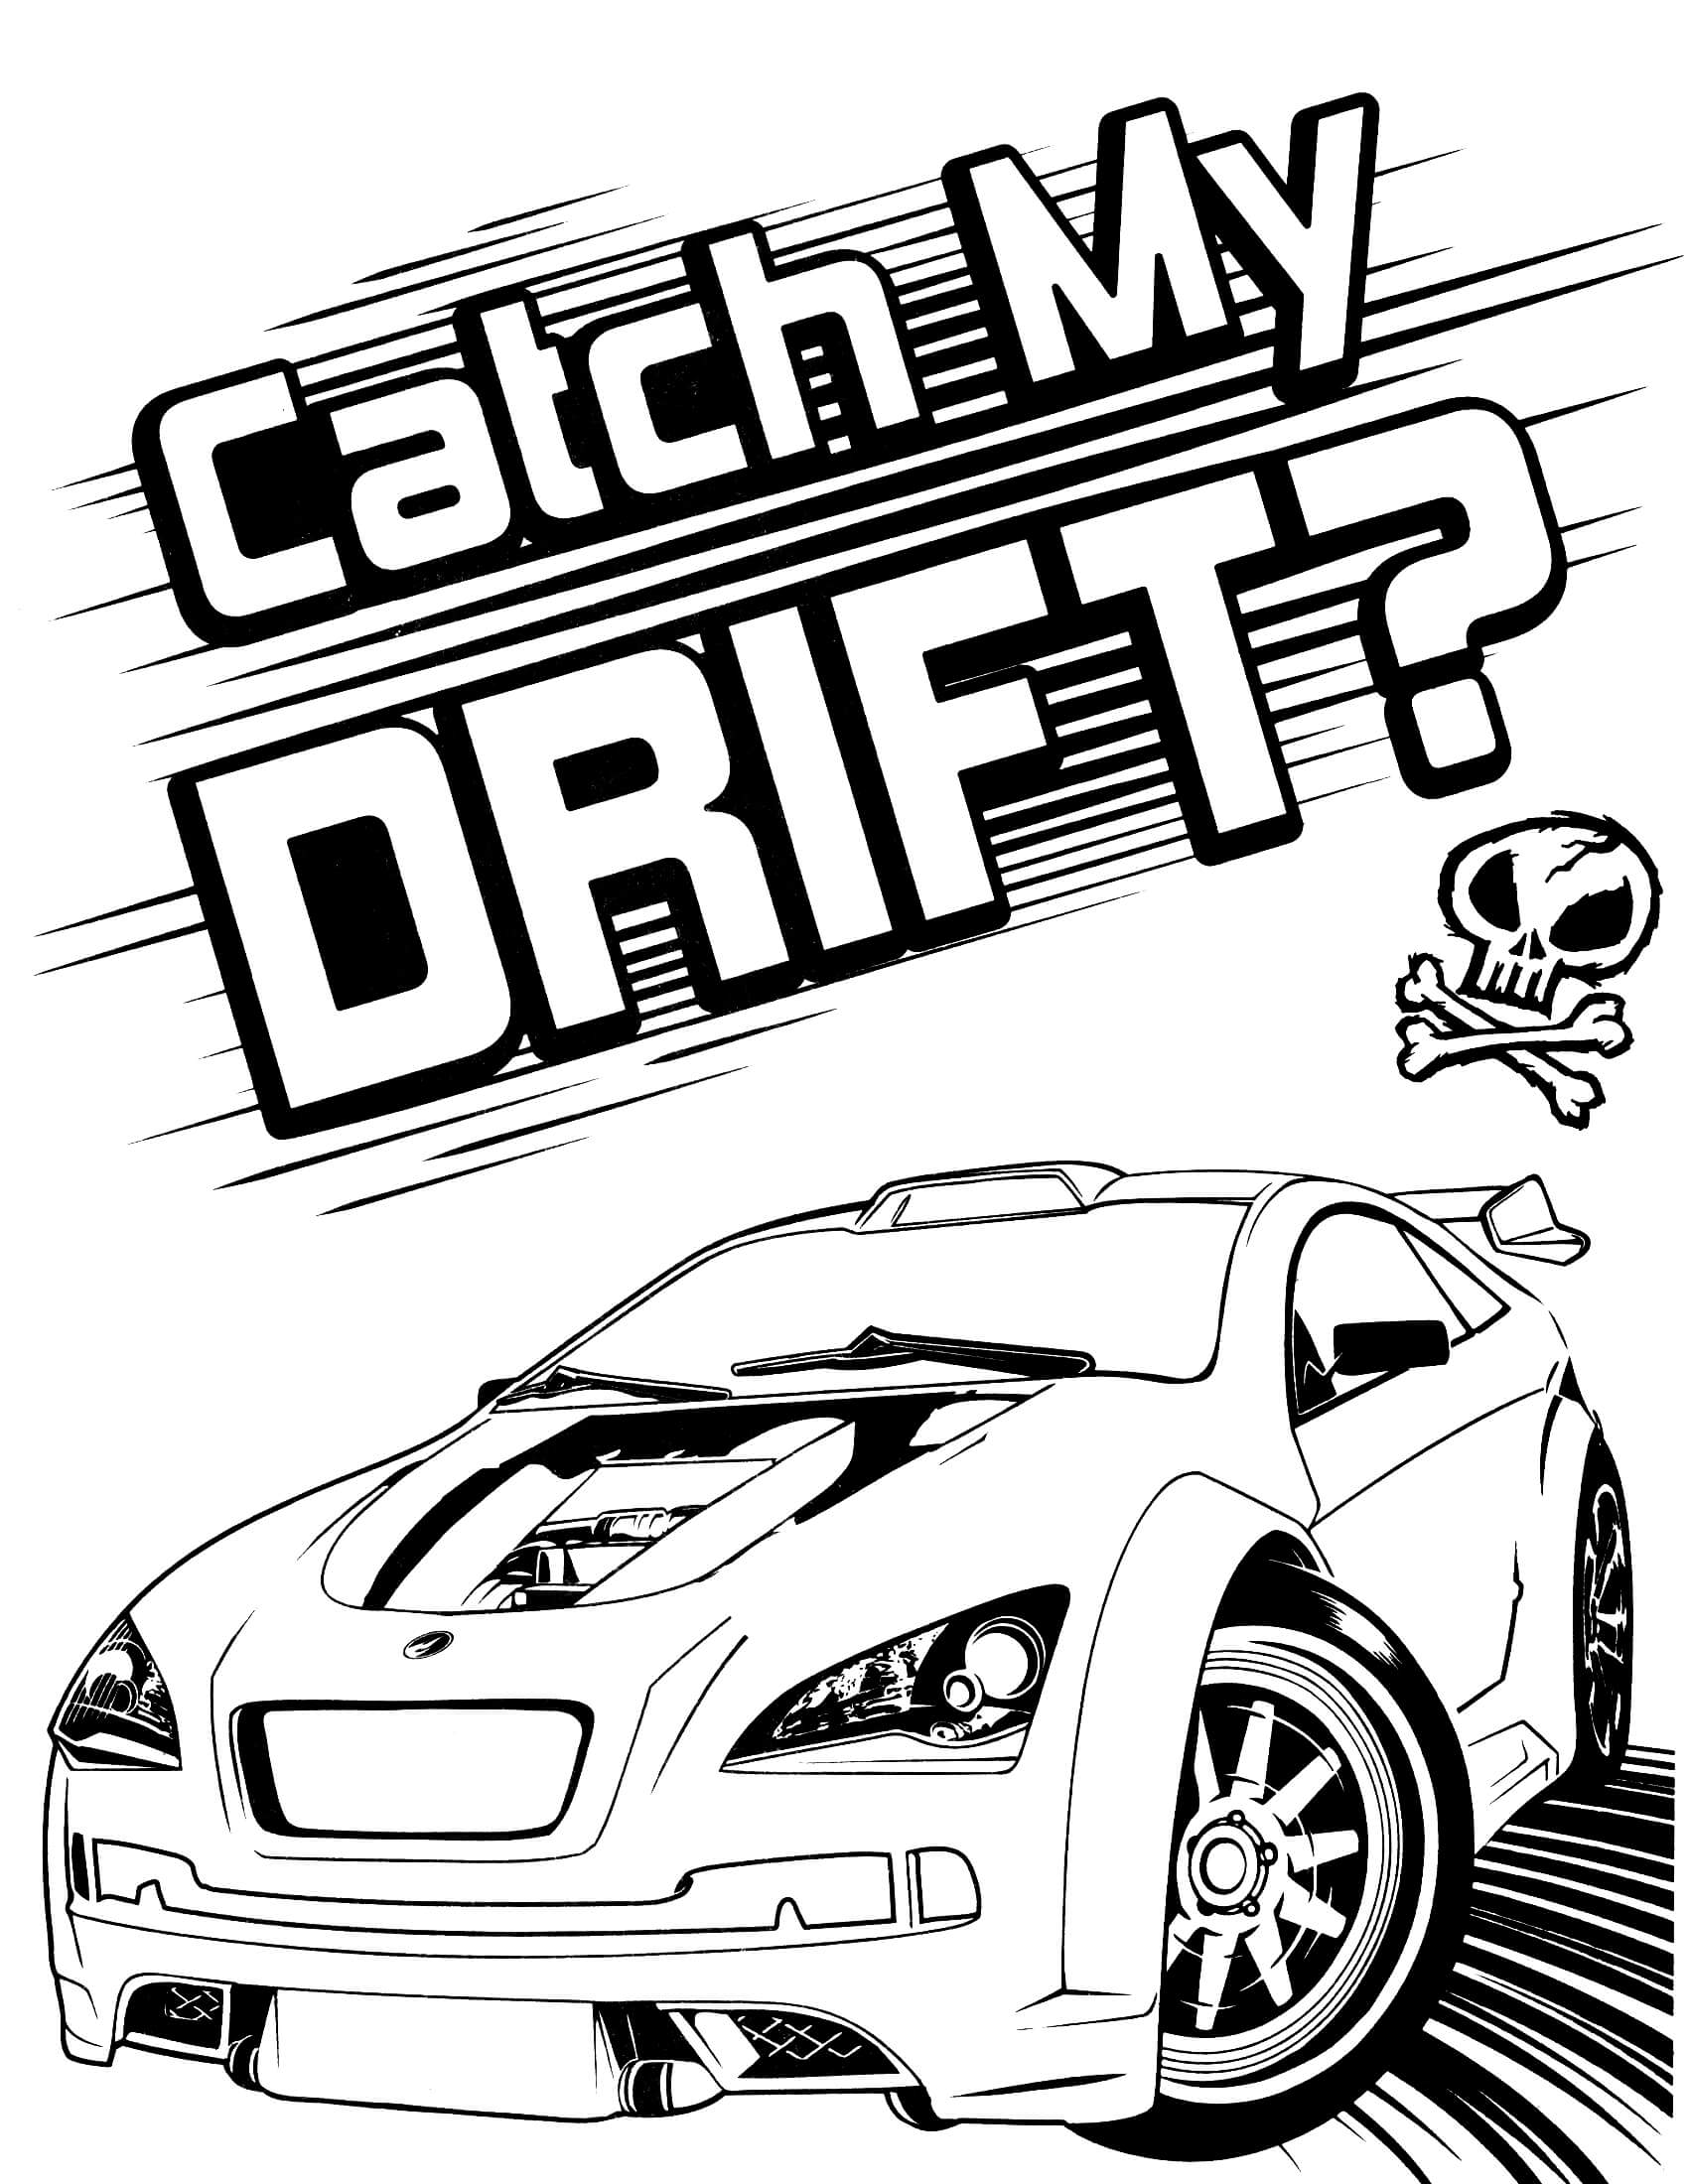 hotwheels colouring pages hot wheels racing league hot wheels coloring pages set 4 hotwheels colouring pages 1 1